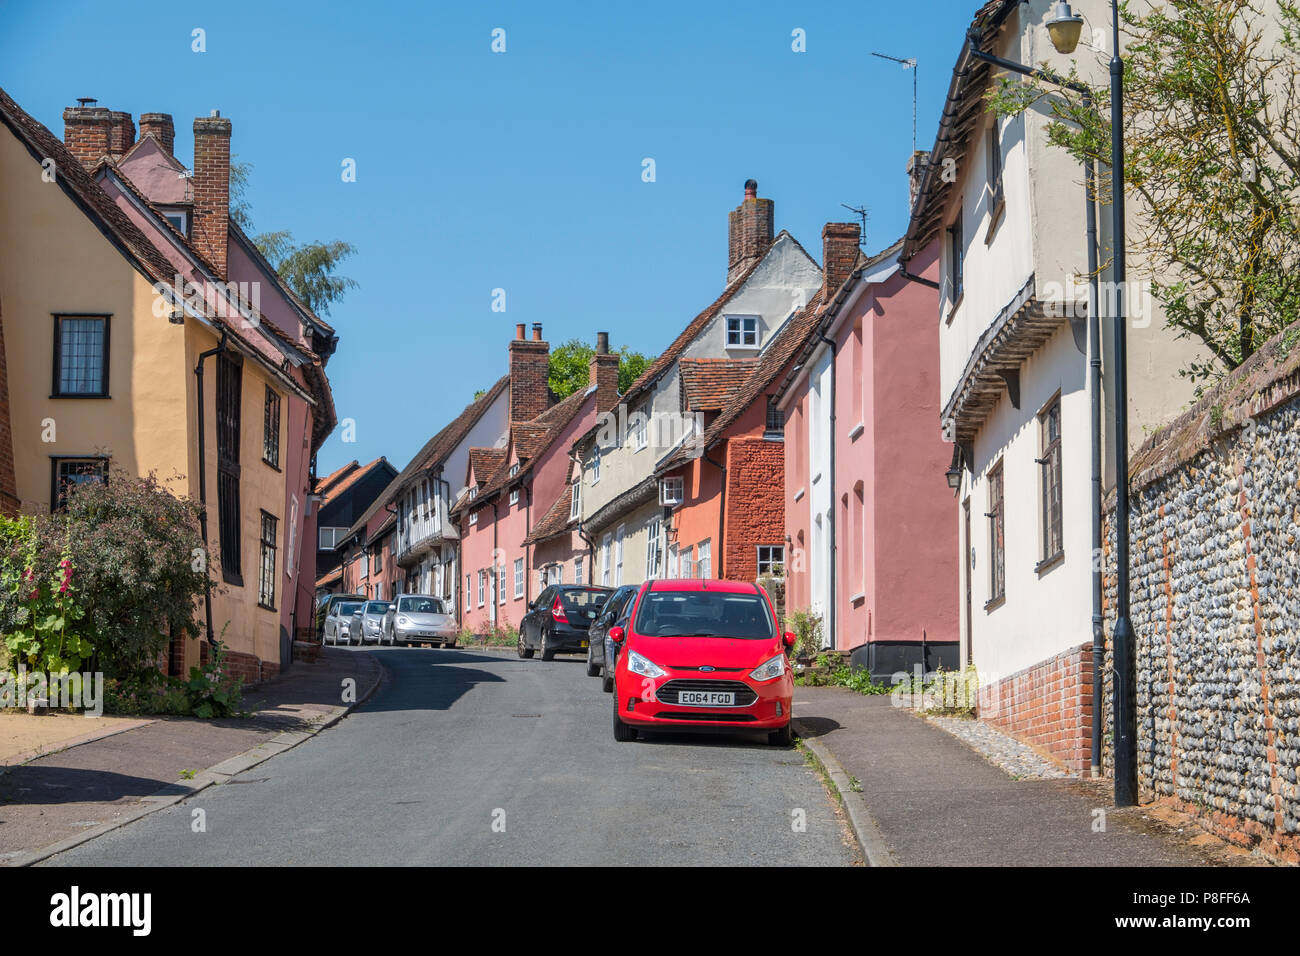 Old buildings in Shilling Street Lavenham a town noted for its 15th-century church and half-timbered medieval cottages. - Stock Image